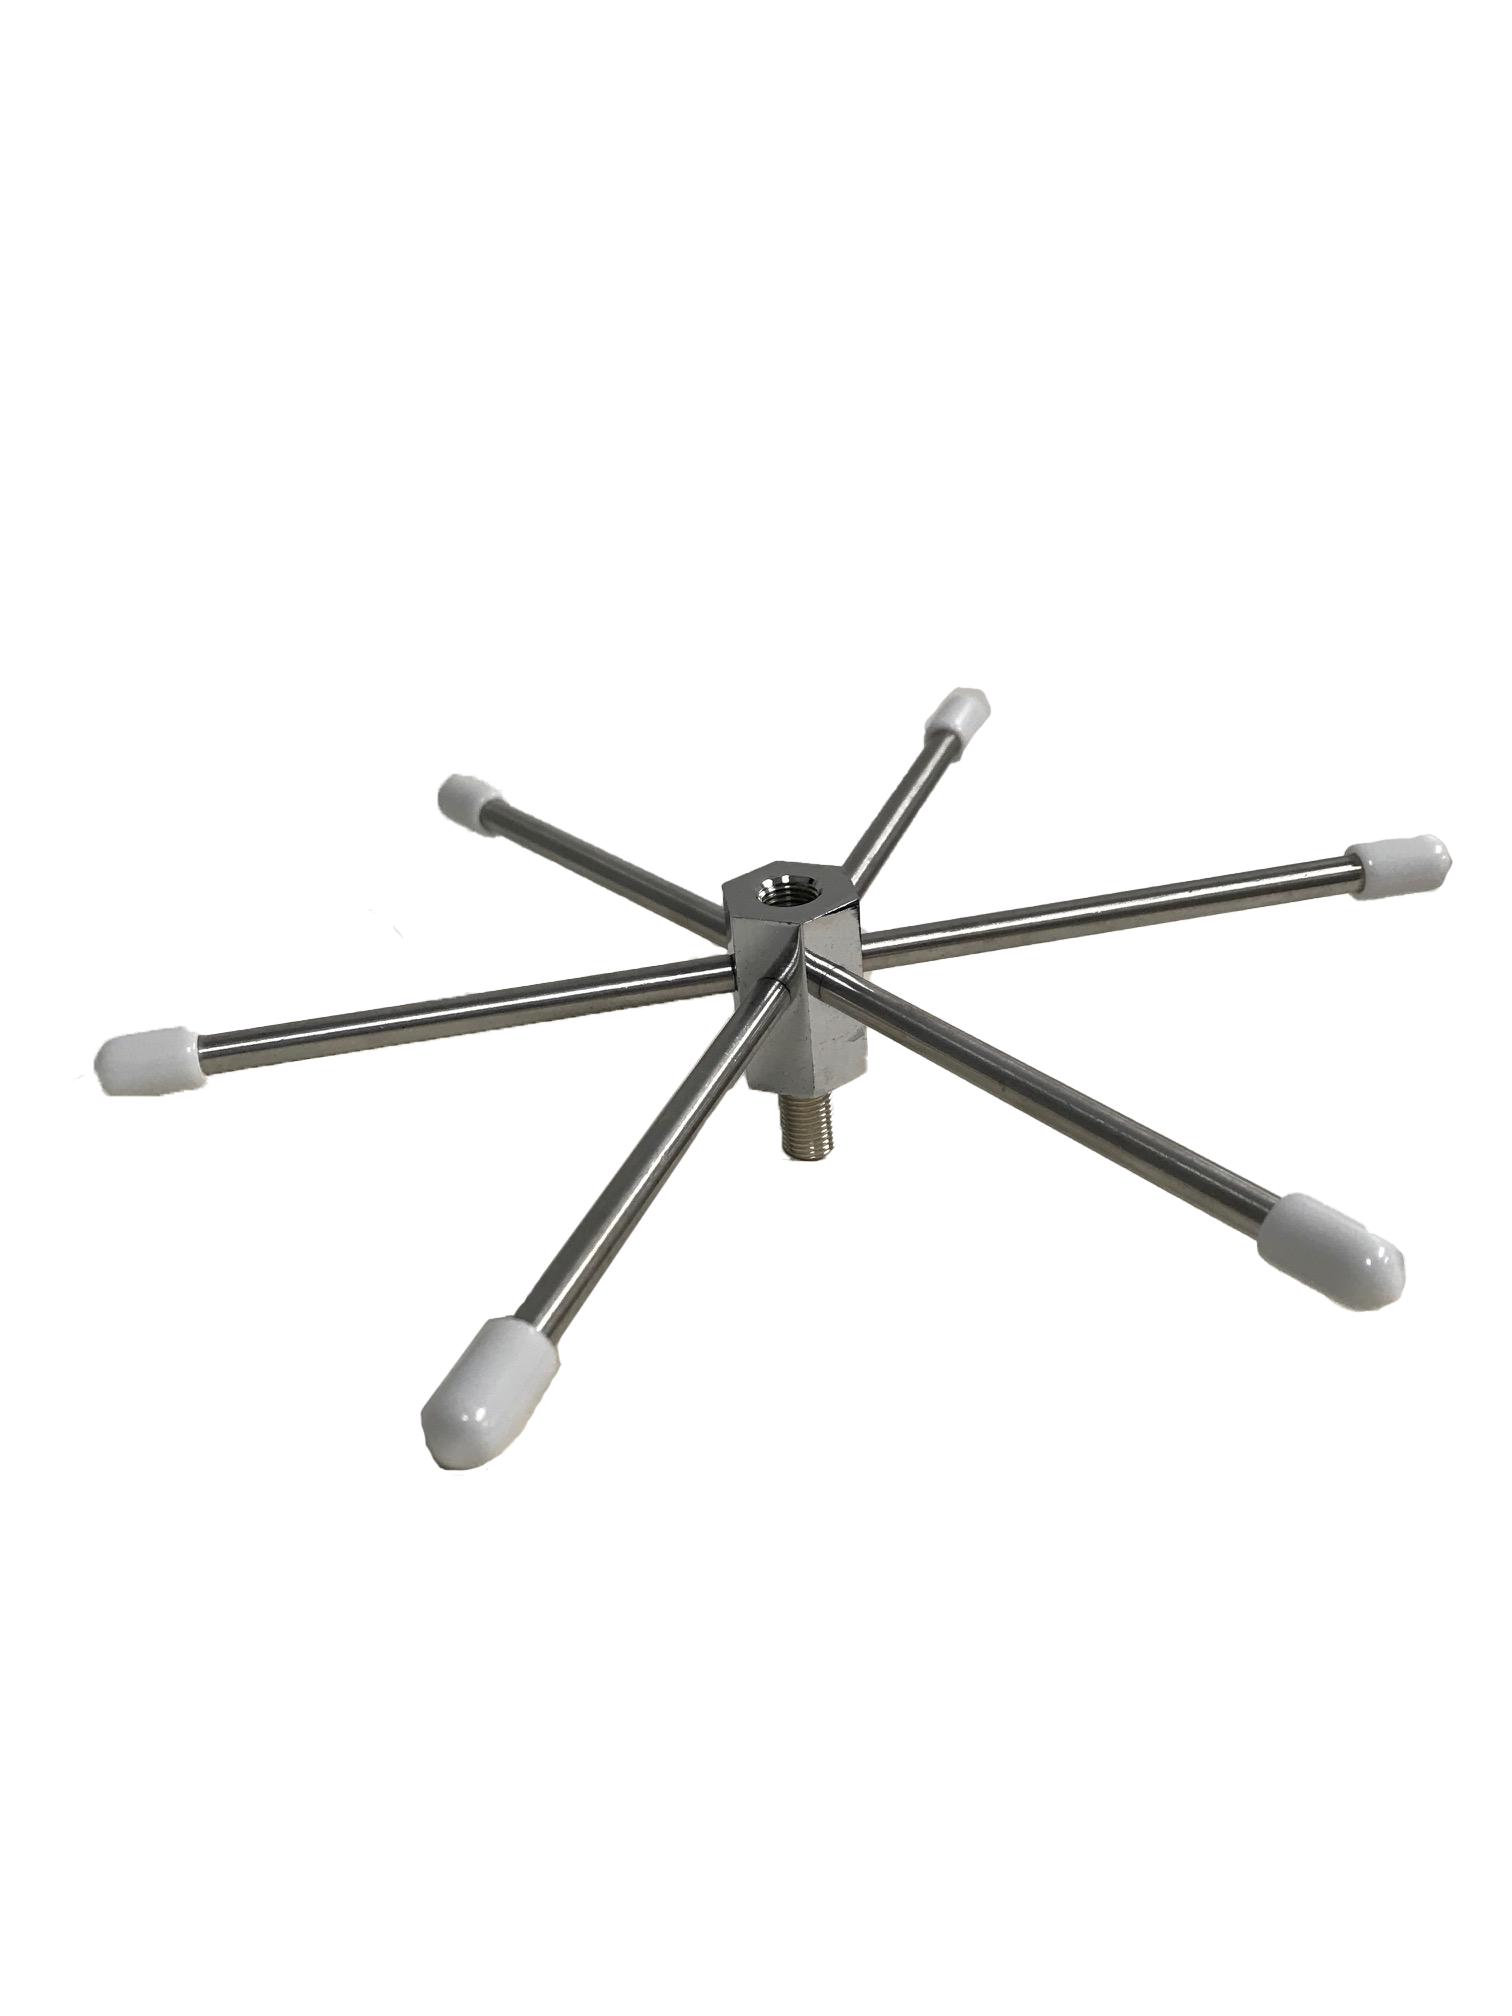 WILKIT-W - Twinpoint 6 Element Mobile Ground Radial (White Tips)